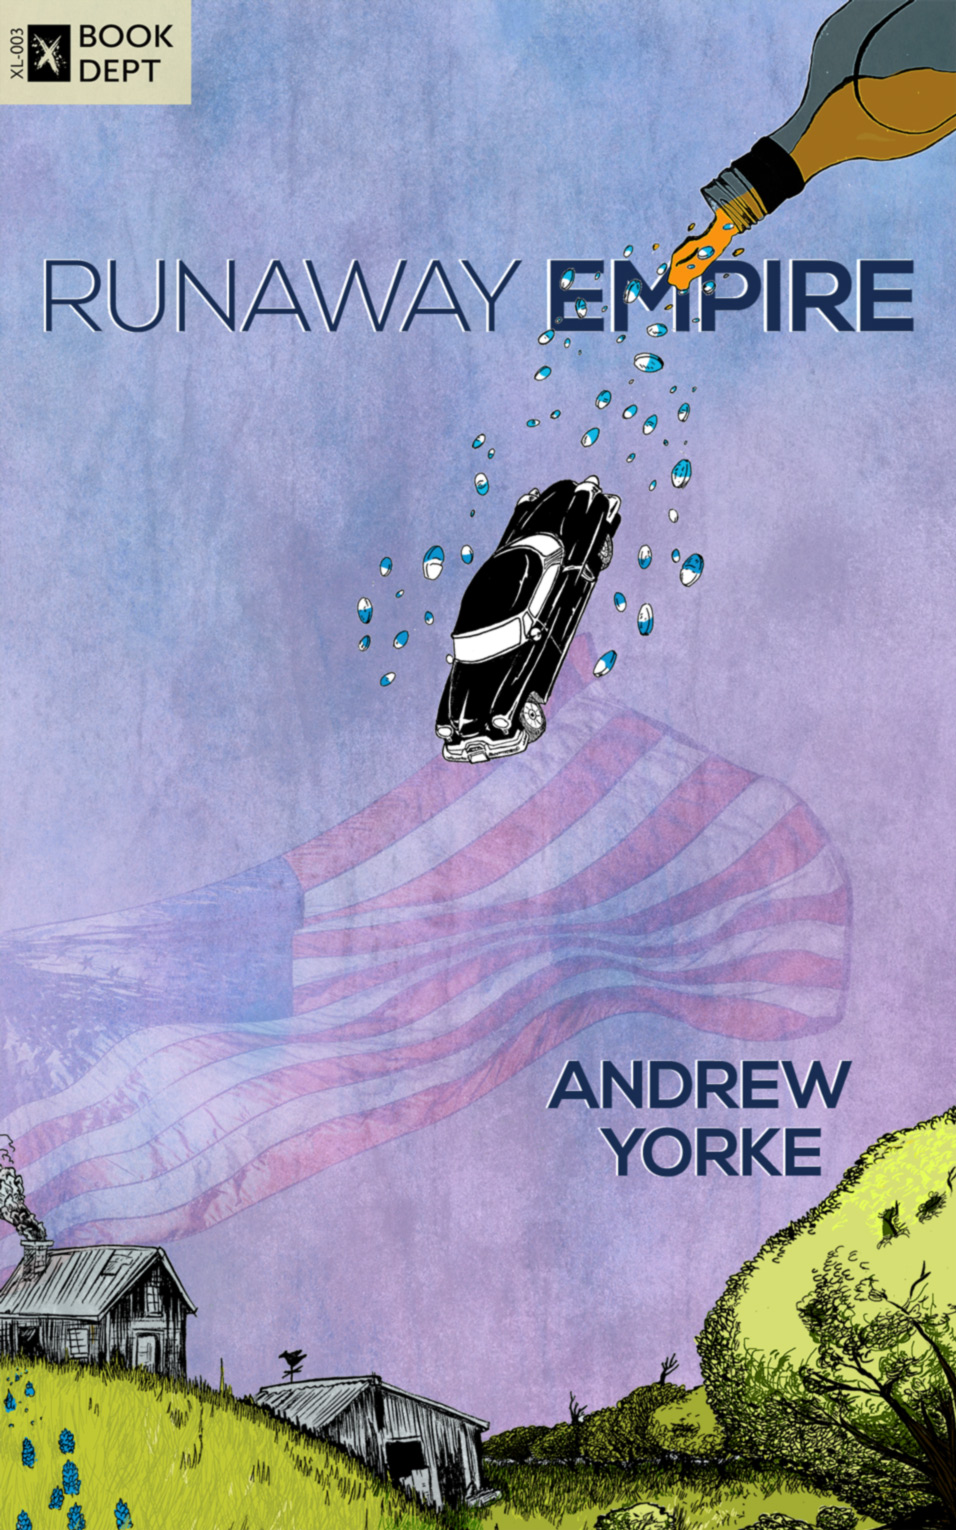 Runaway Empire; by Andrew Yorke, Jonathan Fischer; published by Book Dept, Xteamartists